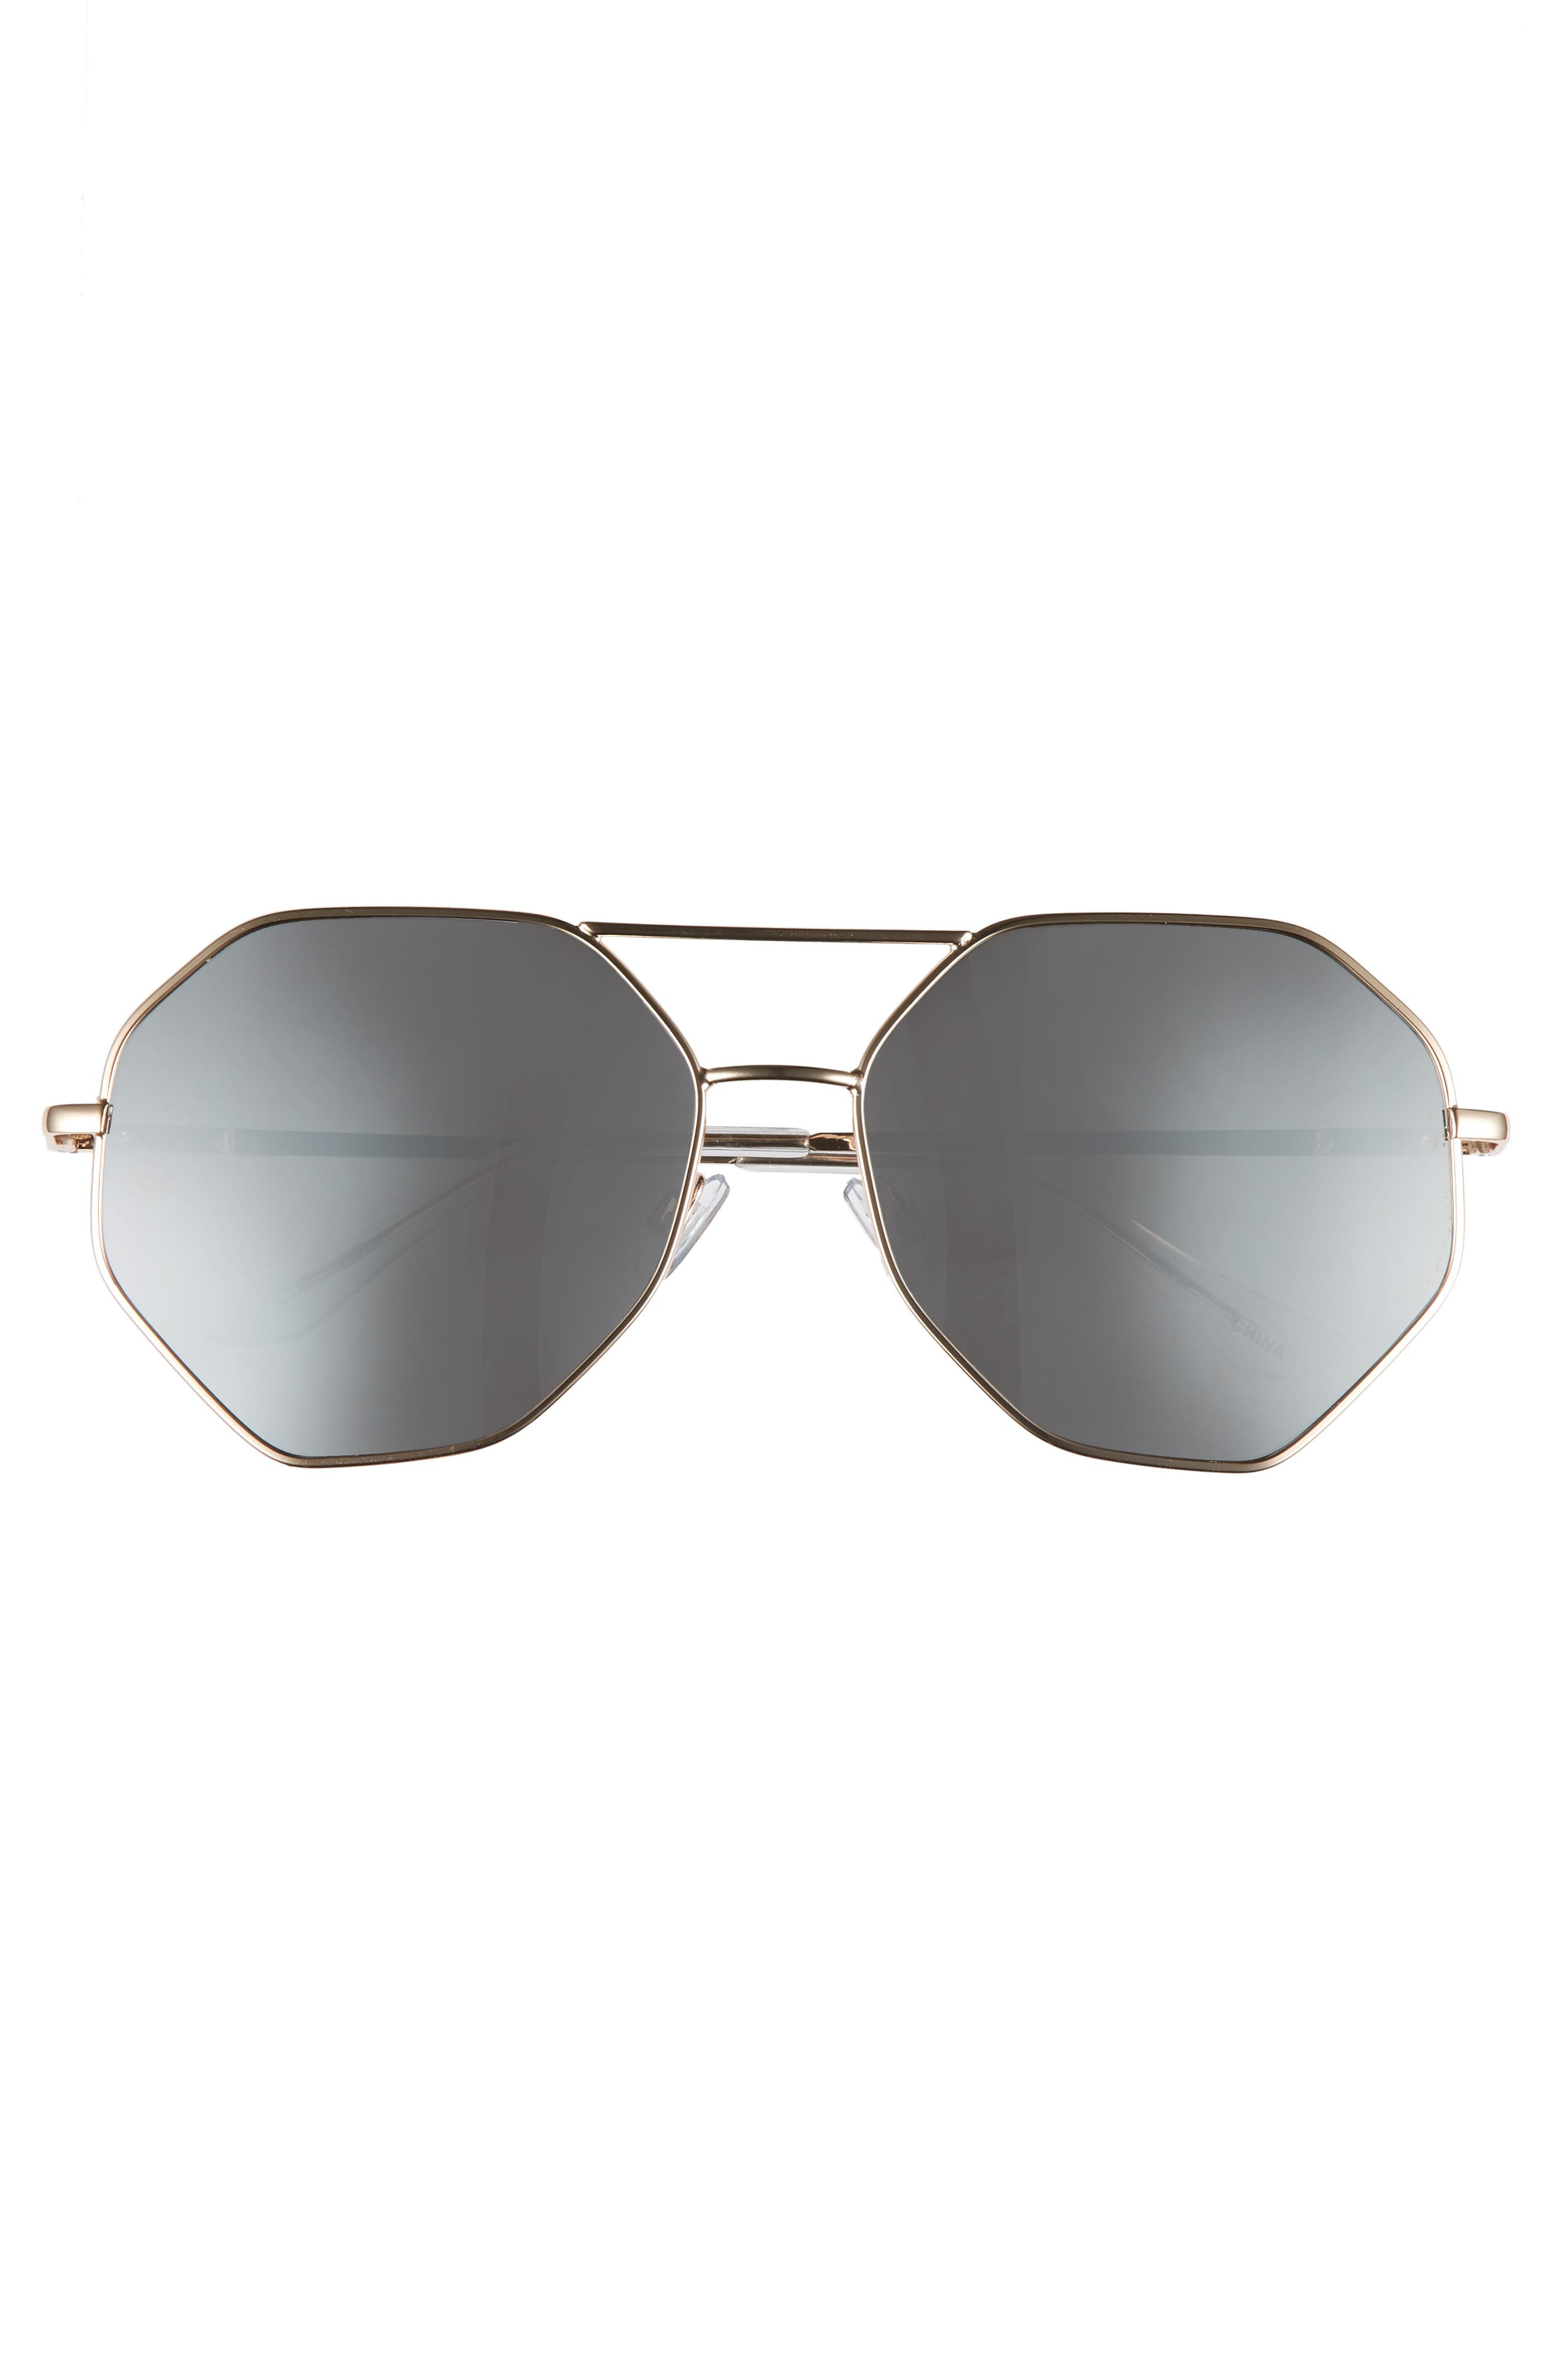 Hexcon Aviator Sunglasses,                             Alternate thumbnail 3, color,                             Shiny Gold/ Silver